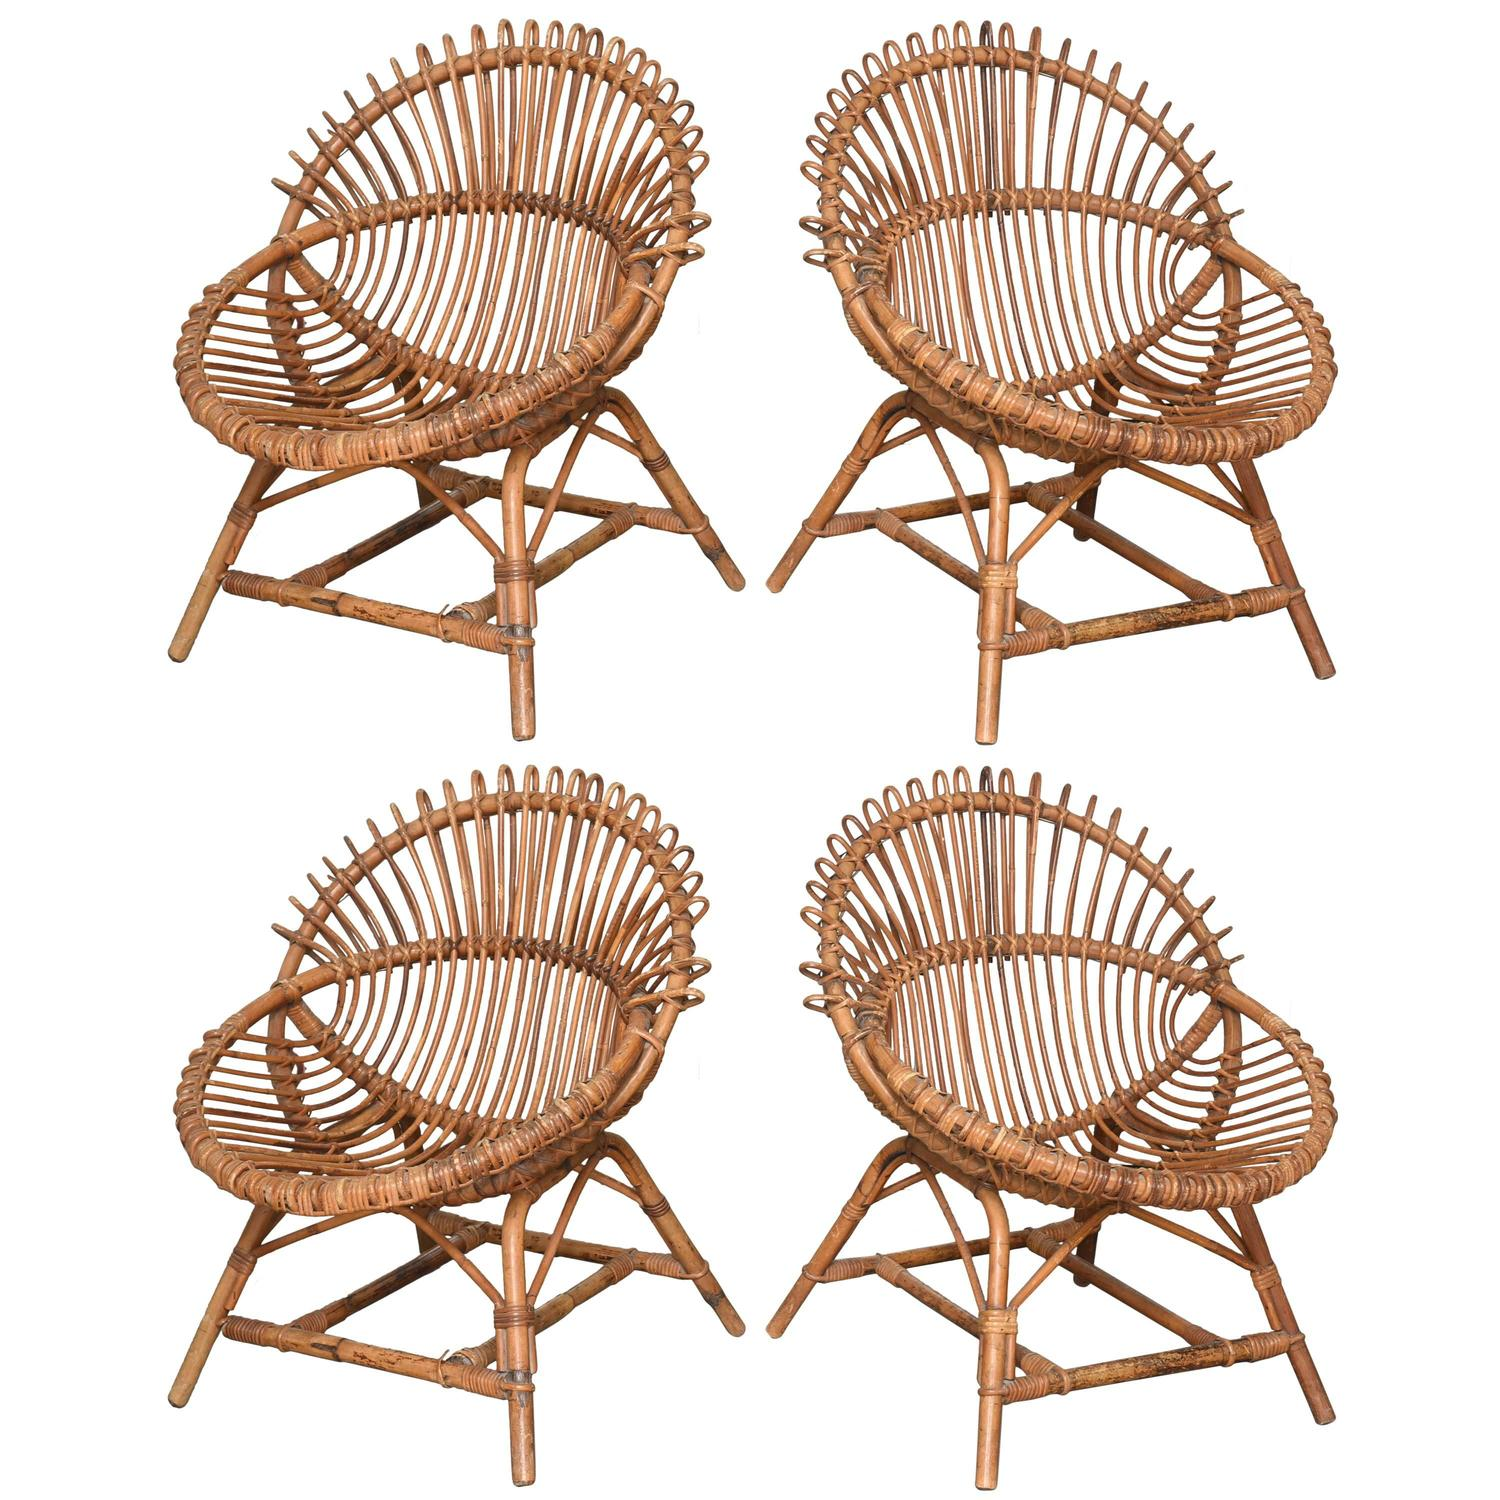 Two Pairs of Vintage French Bamboo and Rattan Chairs at 1stdibs